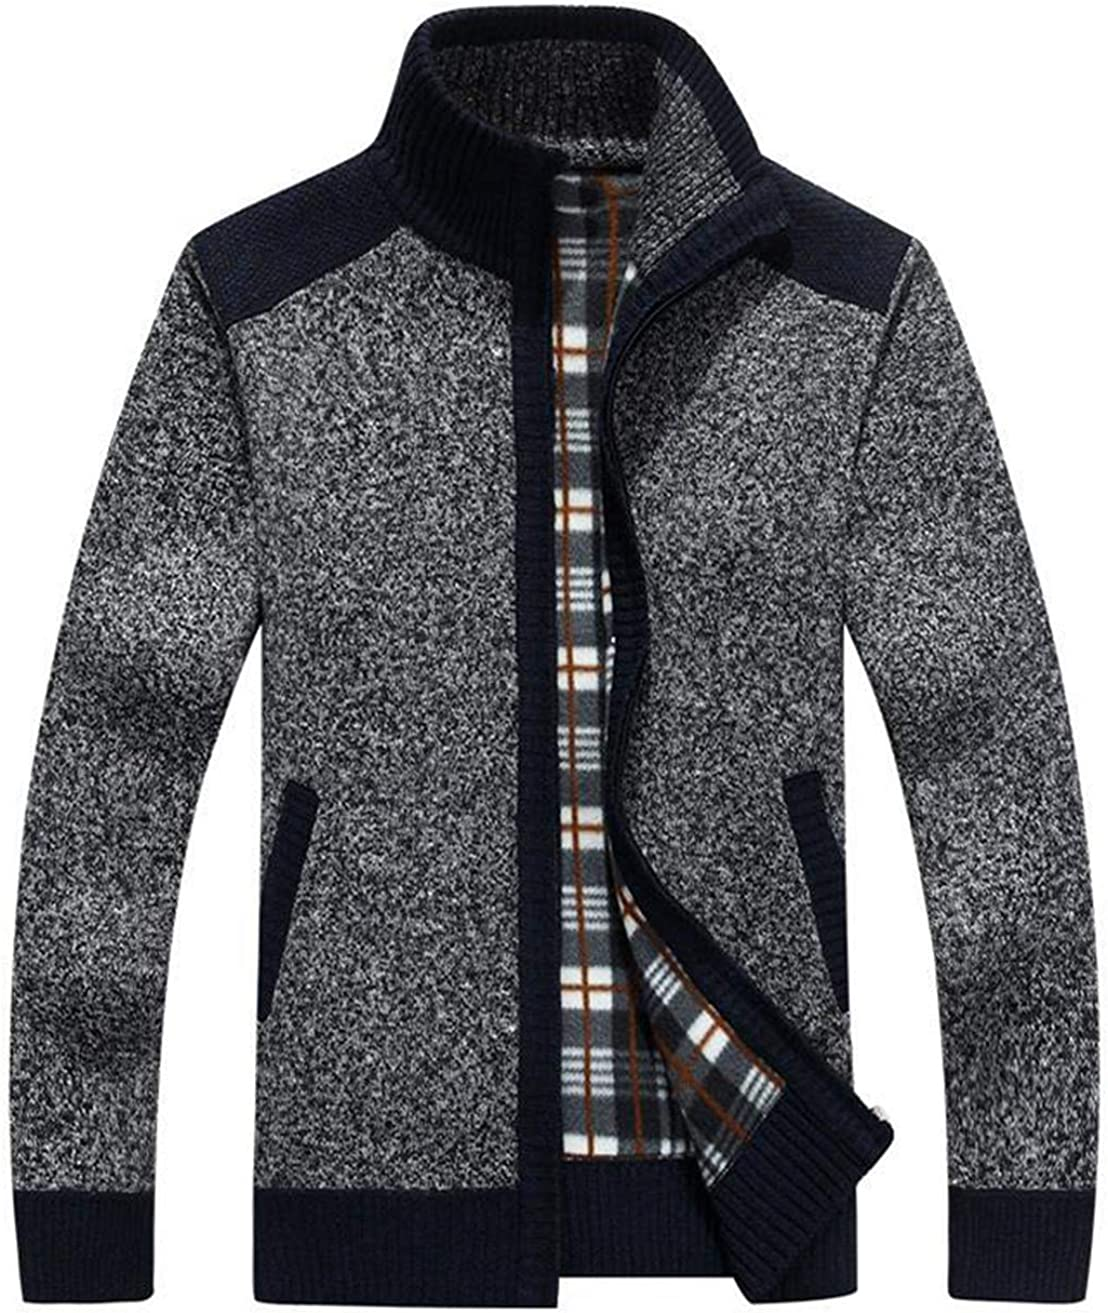 Vcansion Manufacturer regenerated product Men's Classic Superlatite Soft Cardigan Knitted Sweaters